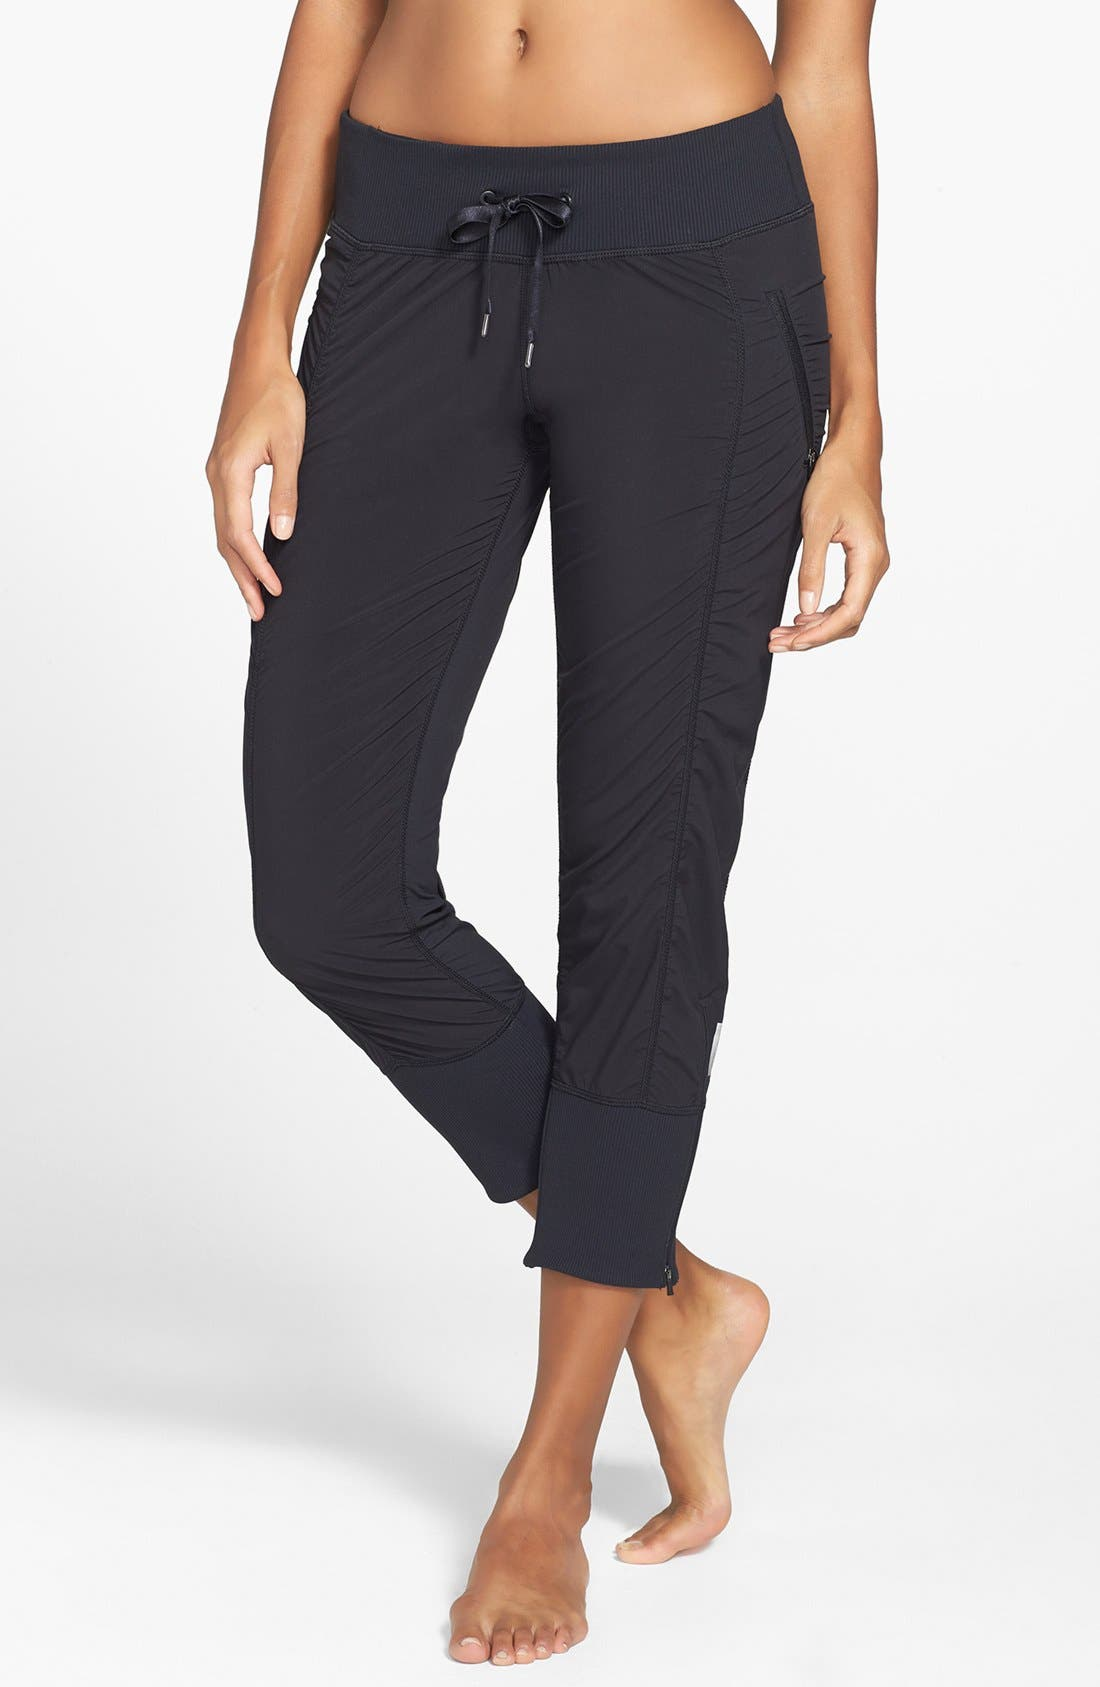 Main Image - Zella 'Move 2' Low Rise Capris